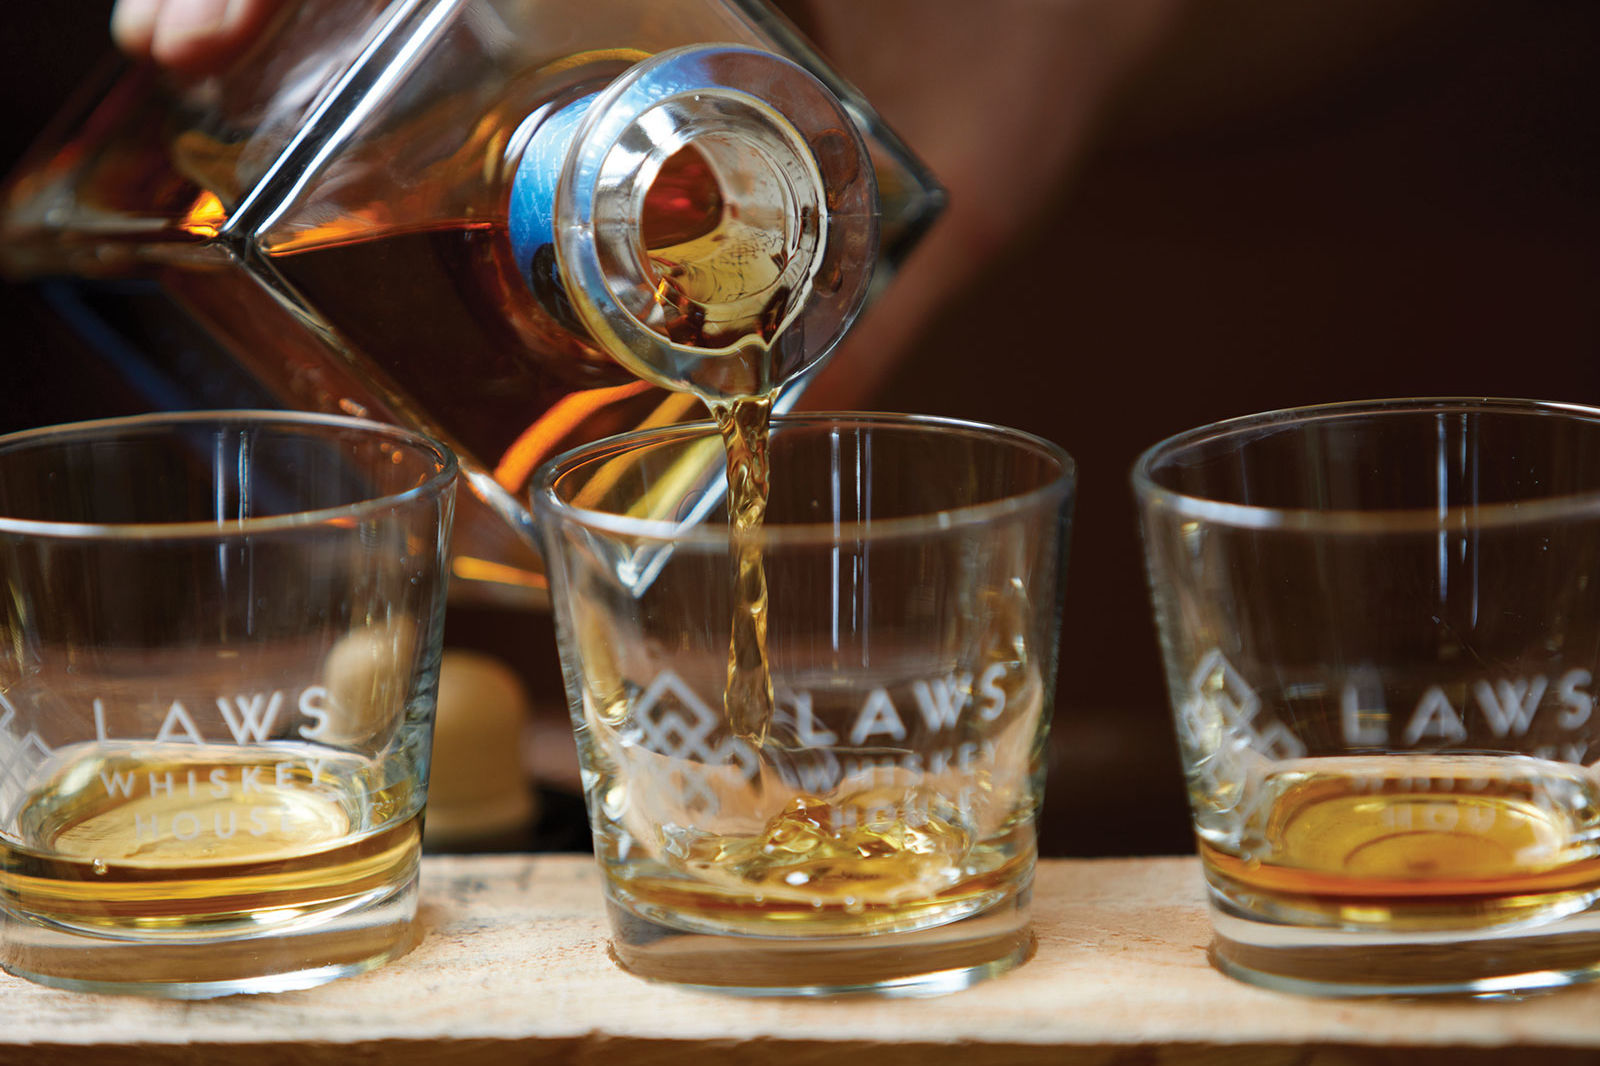 Get Ready for Even More Whiskey Out of Tennessee